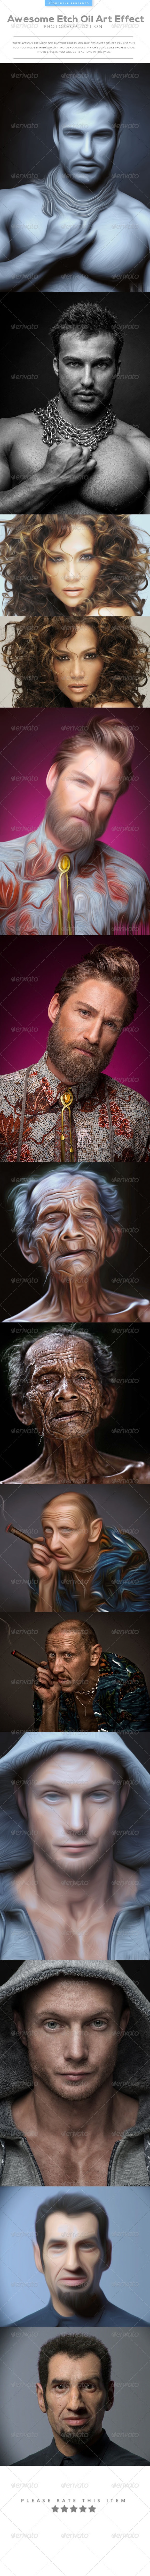 GraphicRiver Awesome Etch Oil Art Effect 8552604